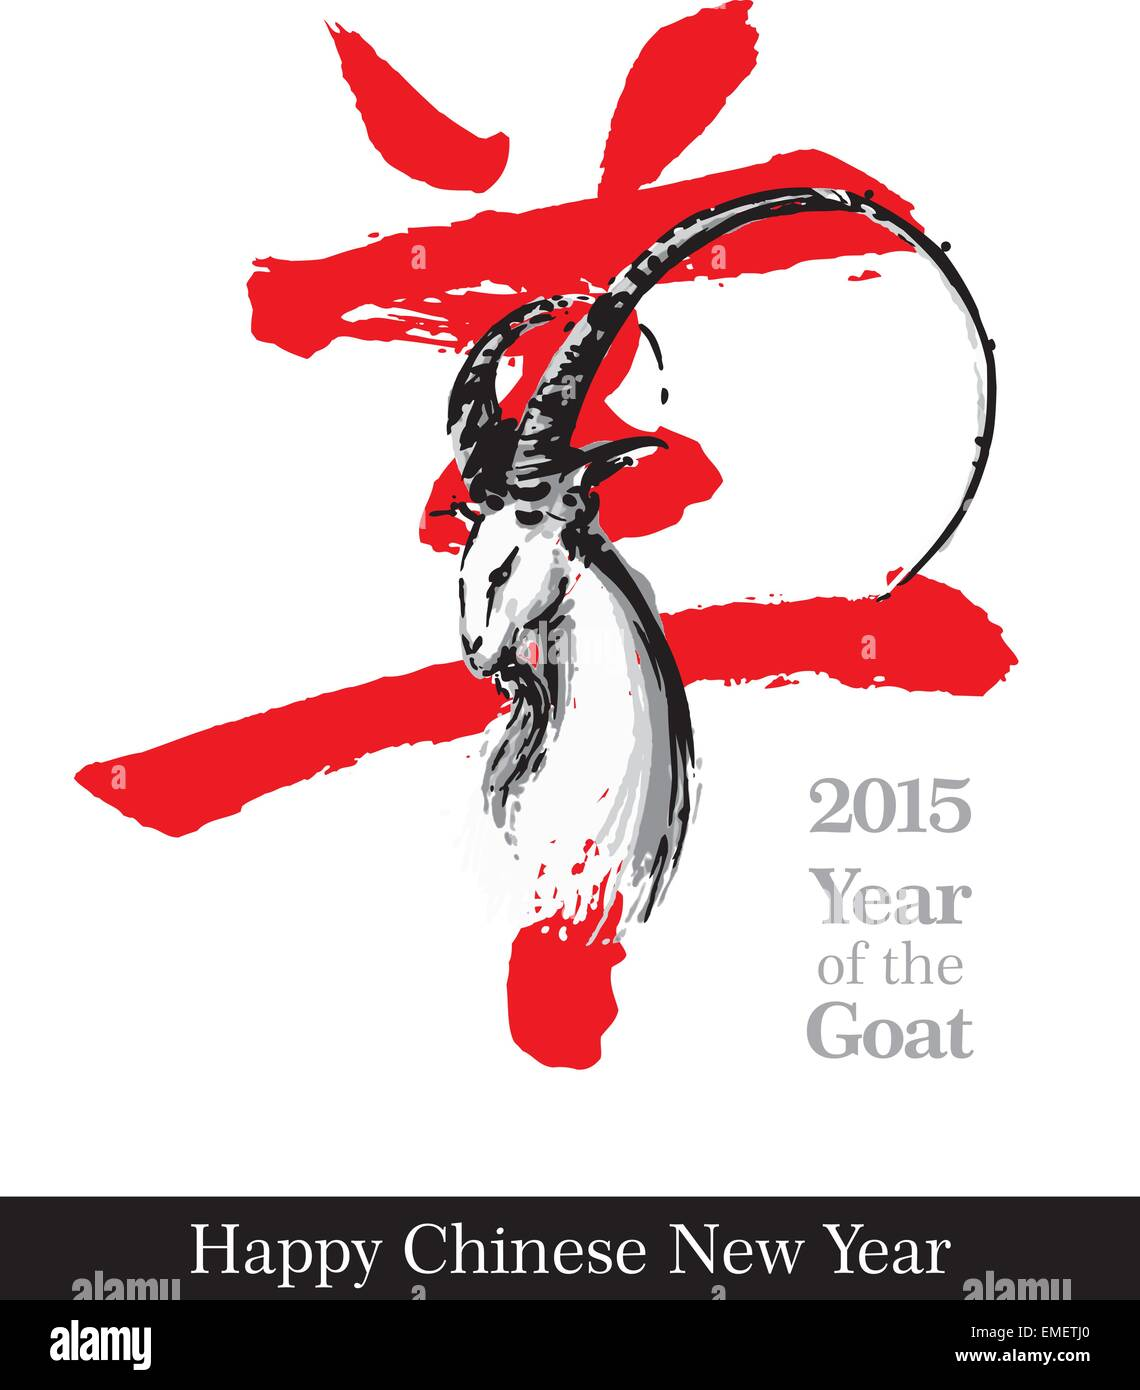 Goat  n Symbol - 2015 Year of the Goat - Stock Image